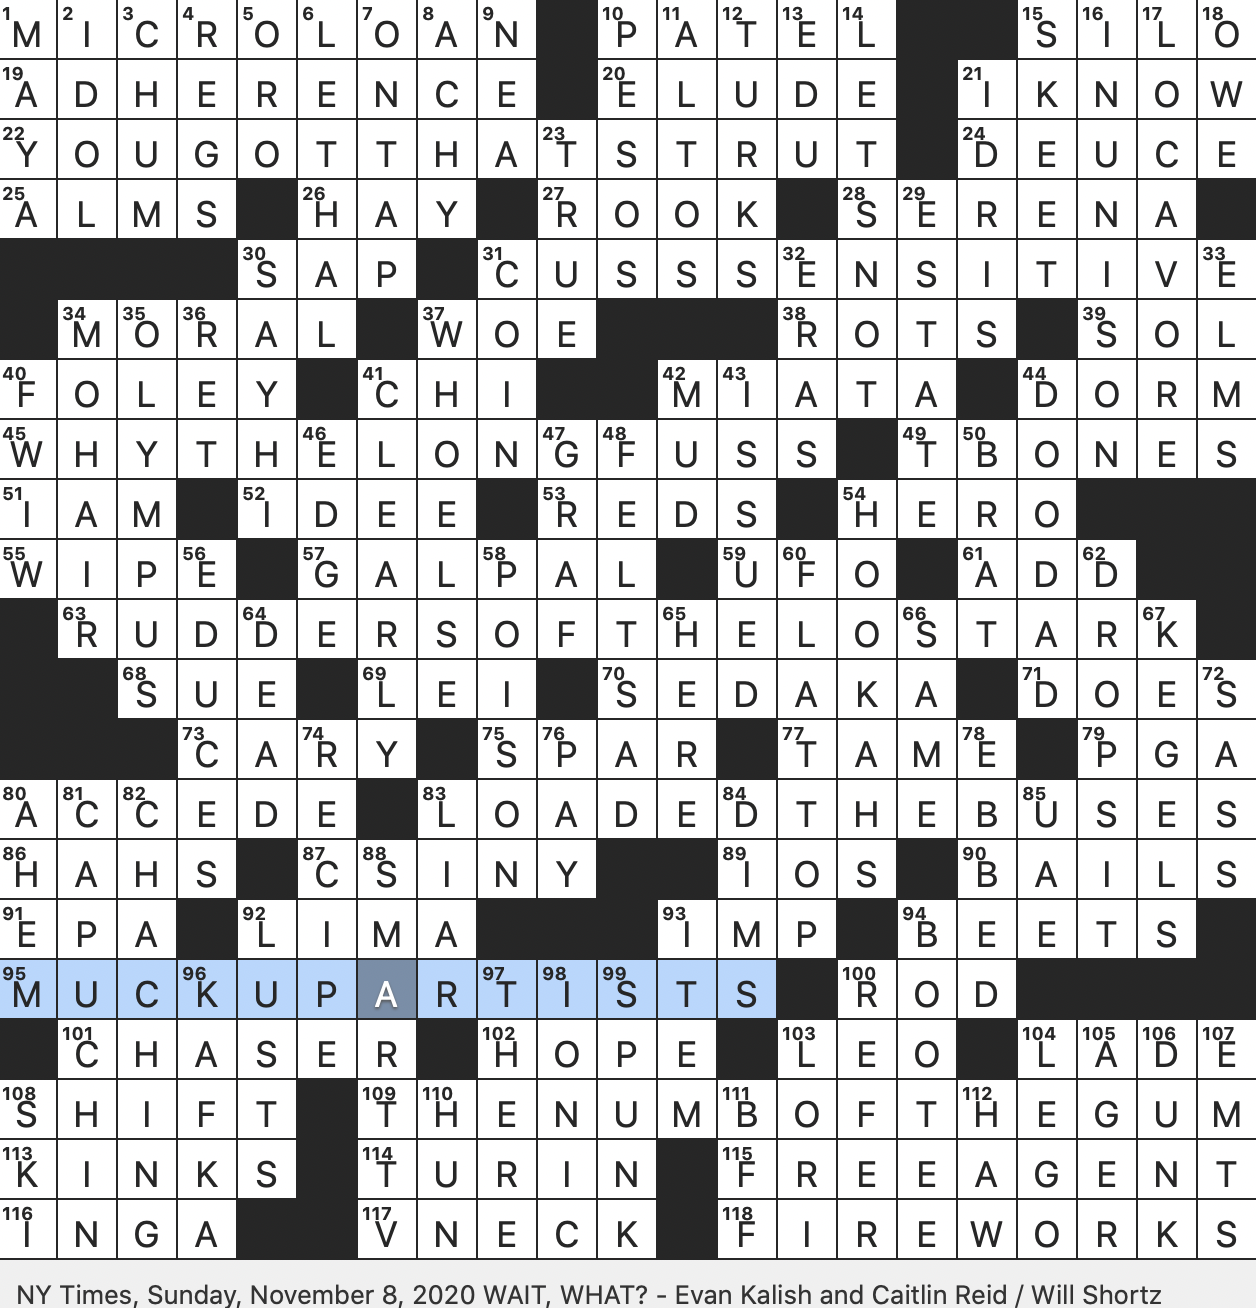 Rex Parker Does The Nyt Crossword Puzzle Italian Automotive Hub Sun 11 8 20 Word Capital Established In 1535 Marauder Of Old Farm To Table Consumer Starting Piece On A1 Or H8 Say